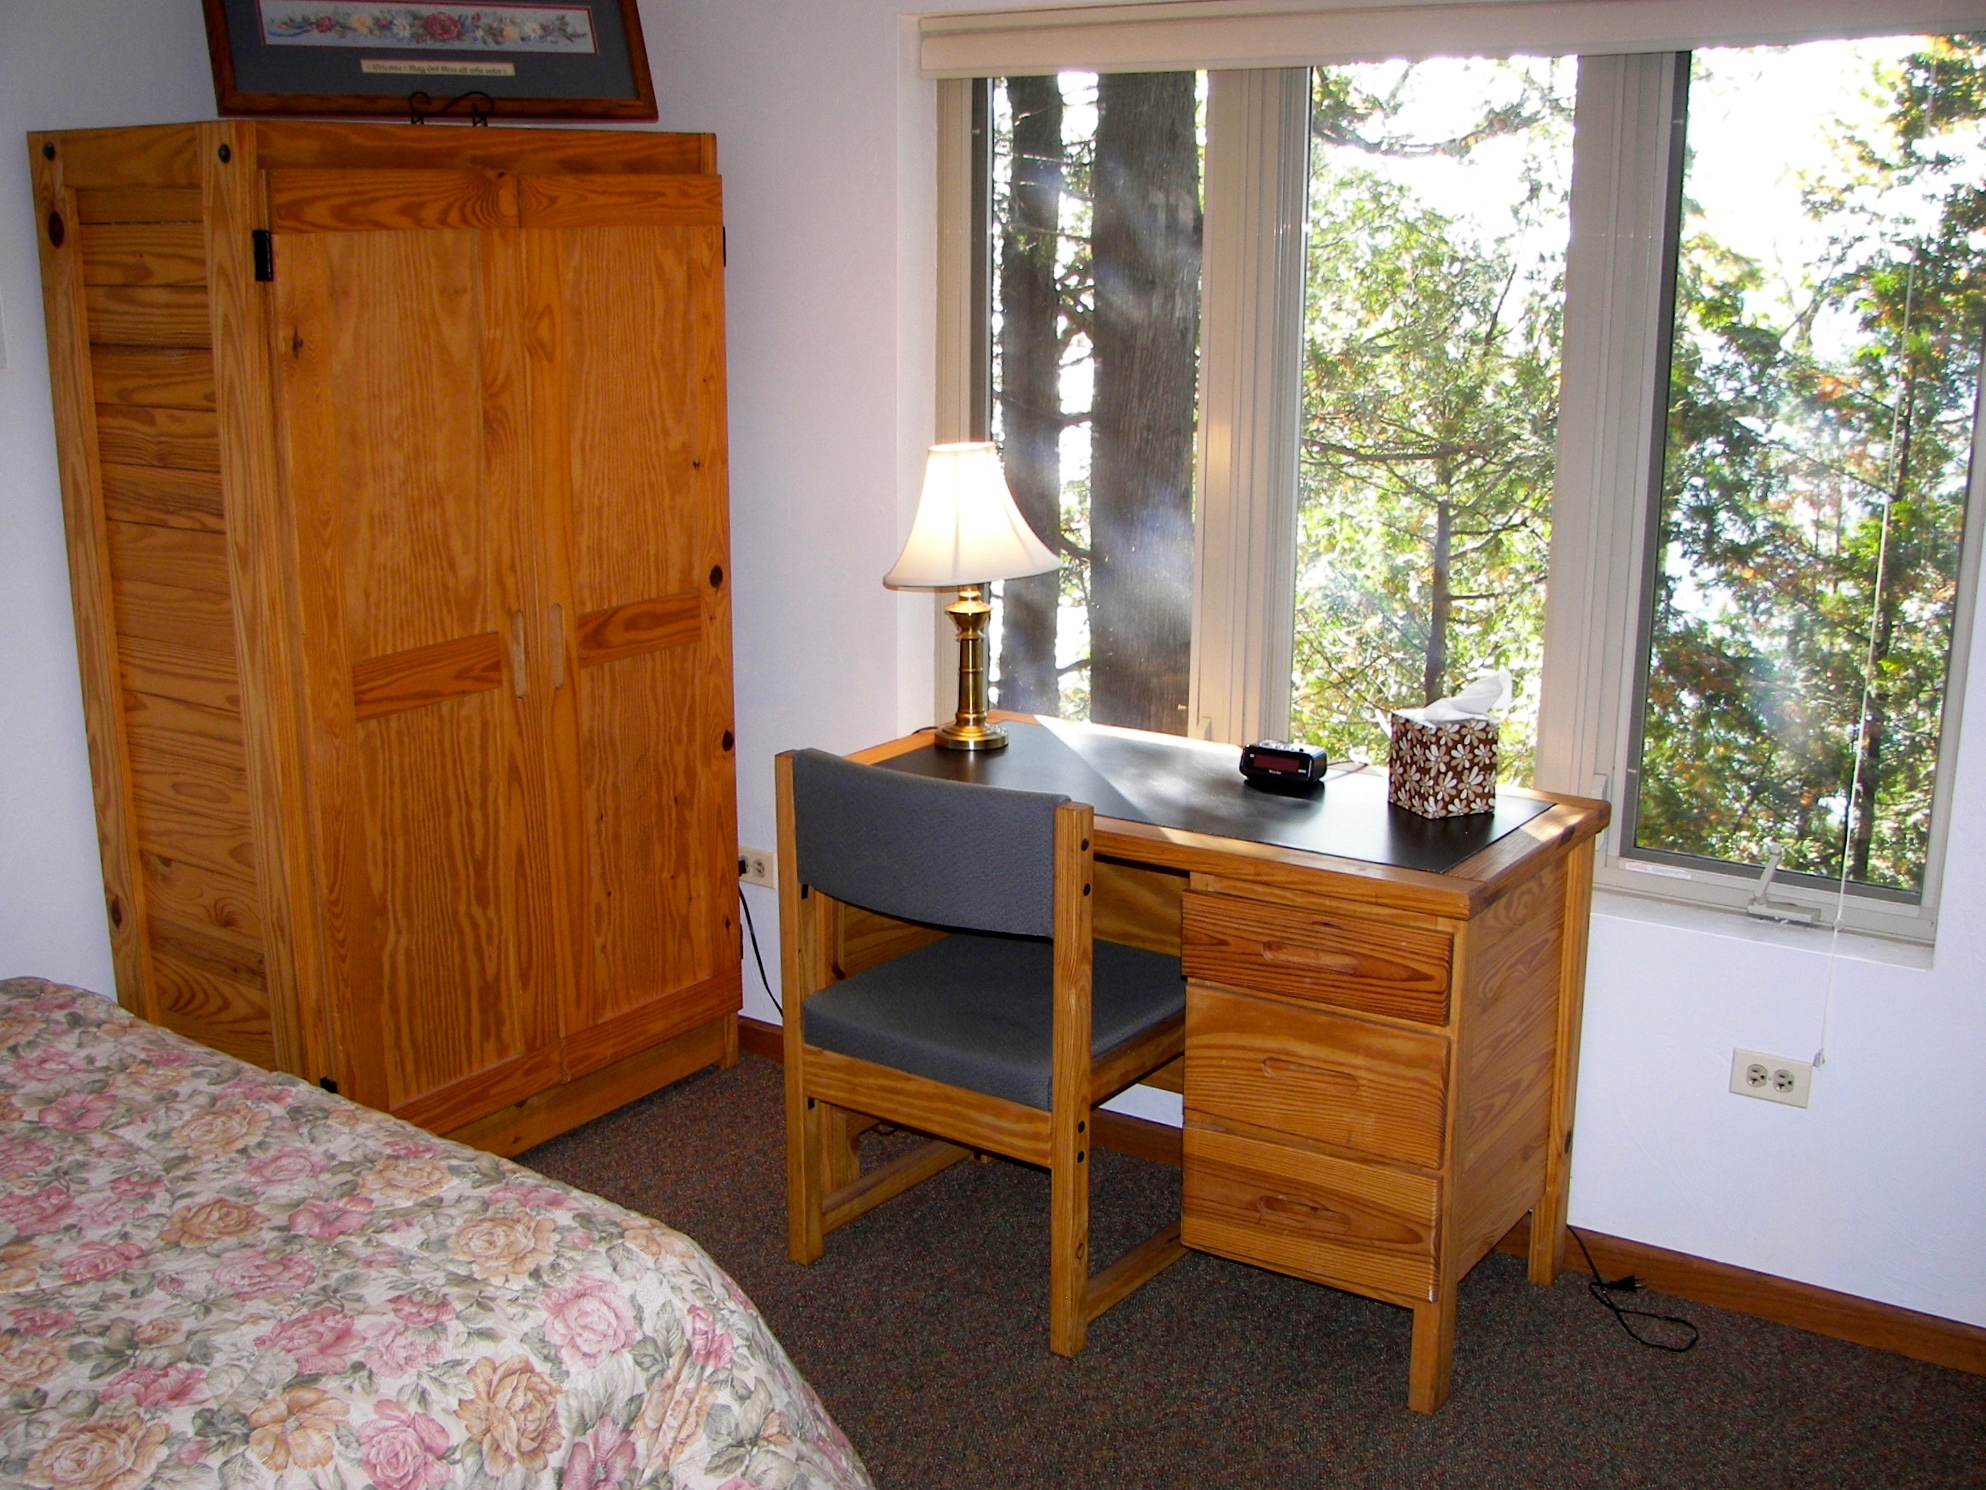 Leader's Room, Bayview Lodge